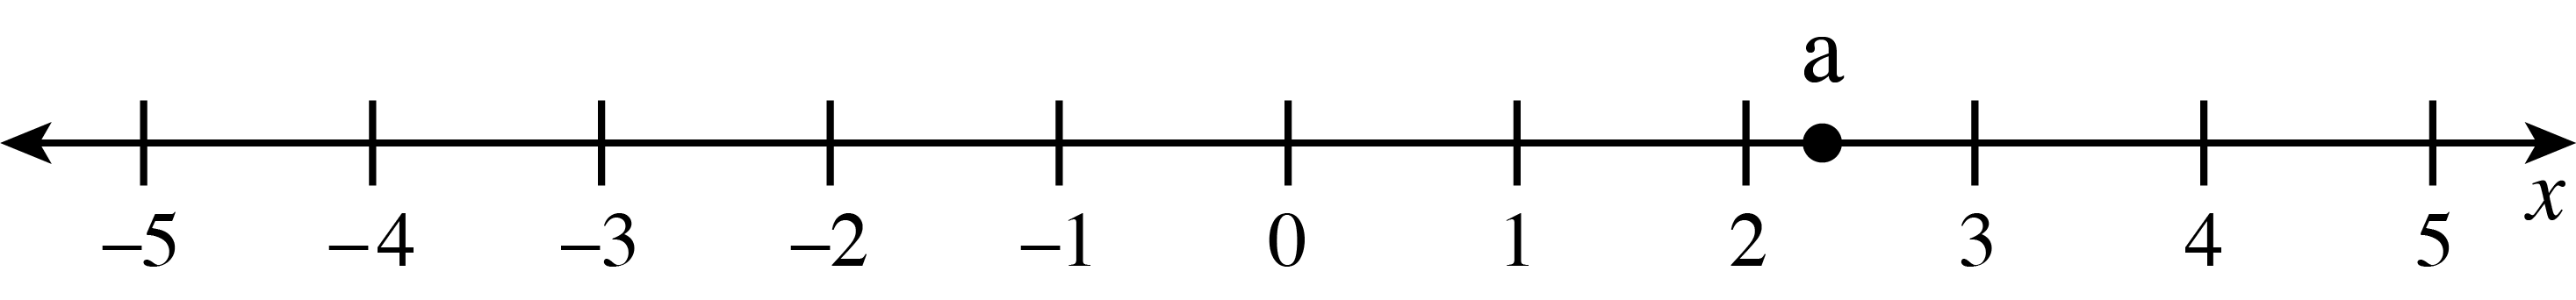 A number line, from negative 5 to positive 5, with a point labeled, a, 1 third of the way from 2 to 3.